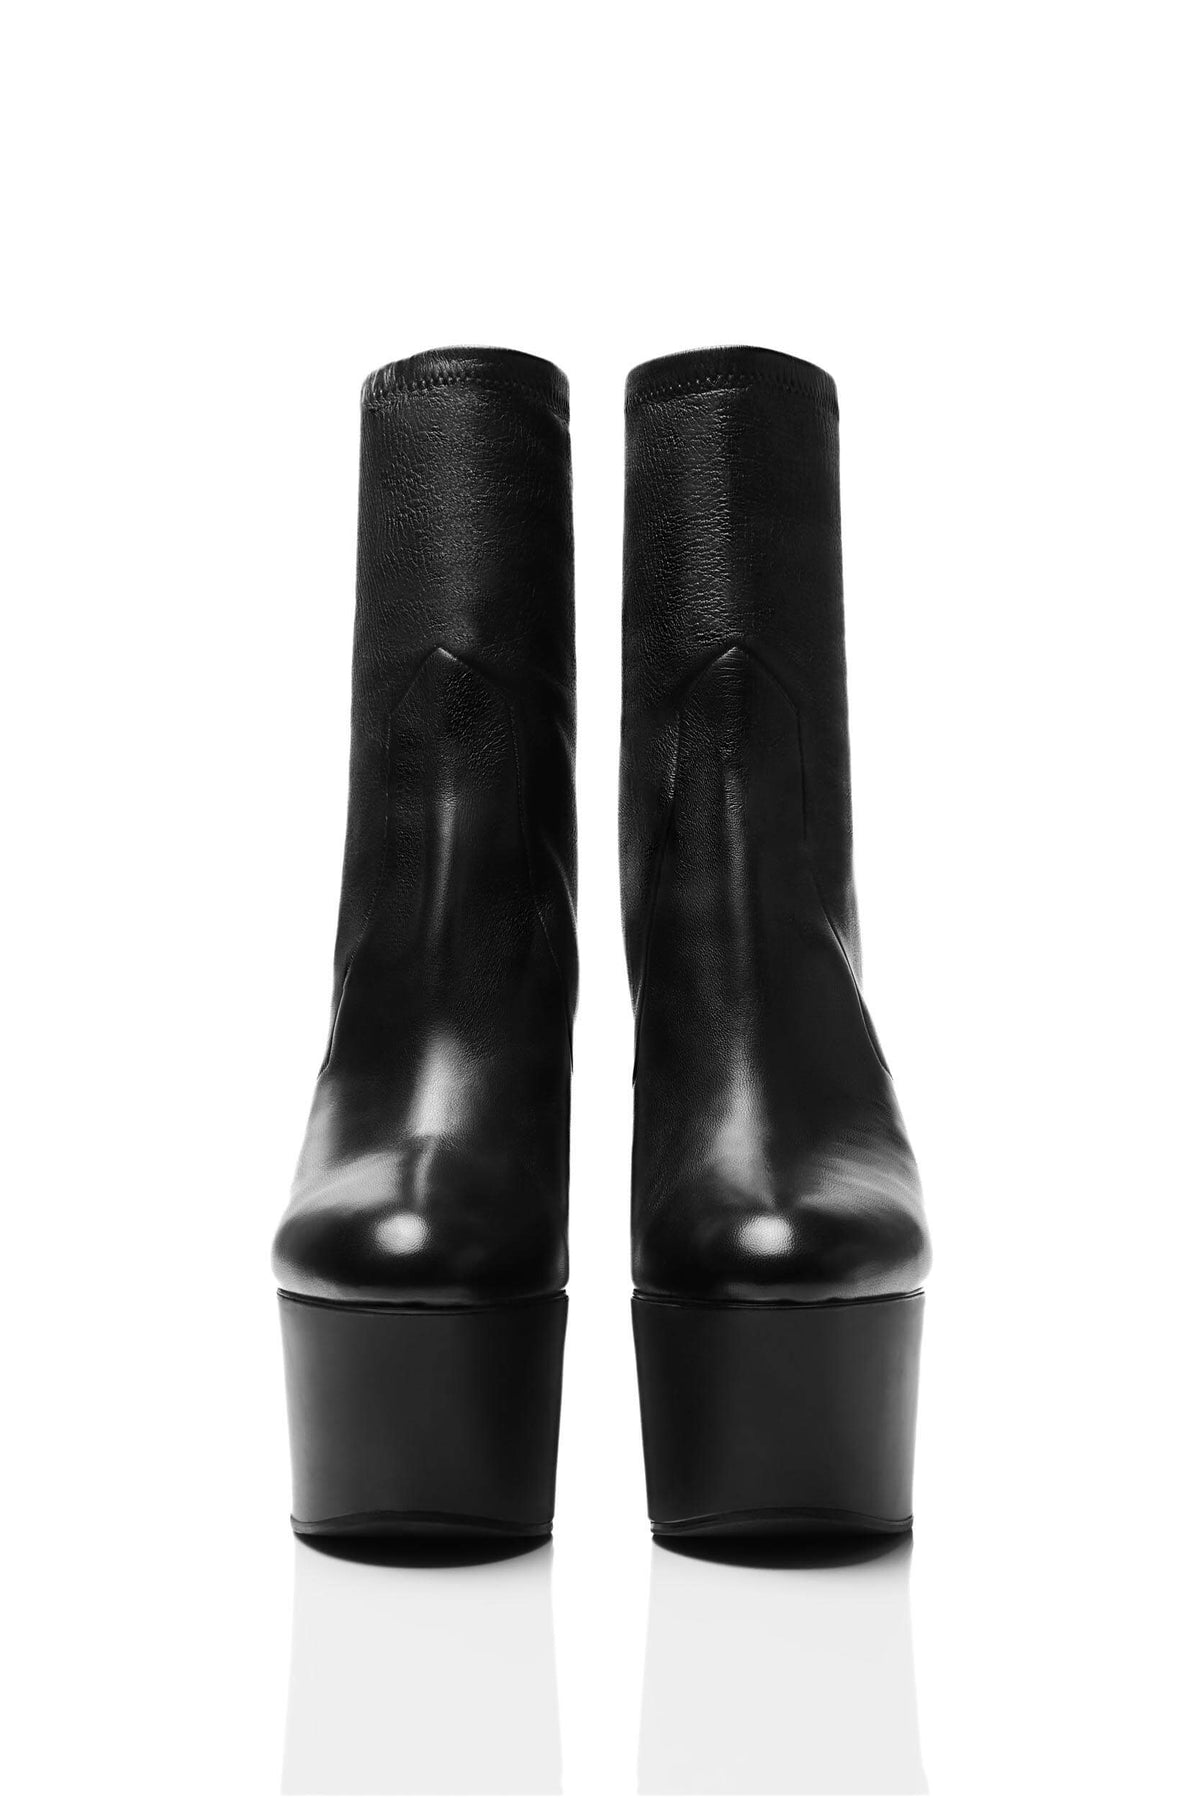 HAIKI 851 – Stretch pull-on platform boot with chic, almond shape toe. Made of Nappa leather in black.